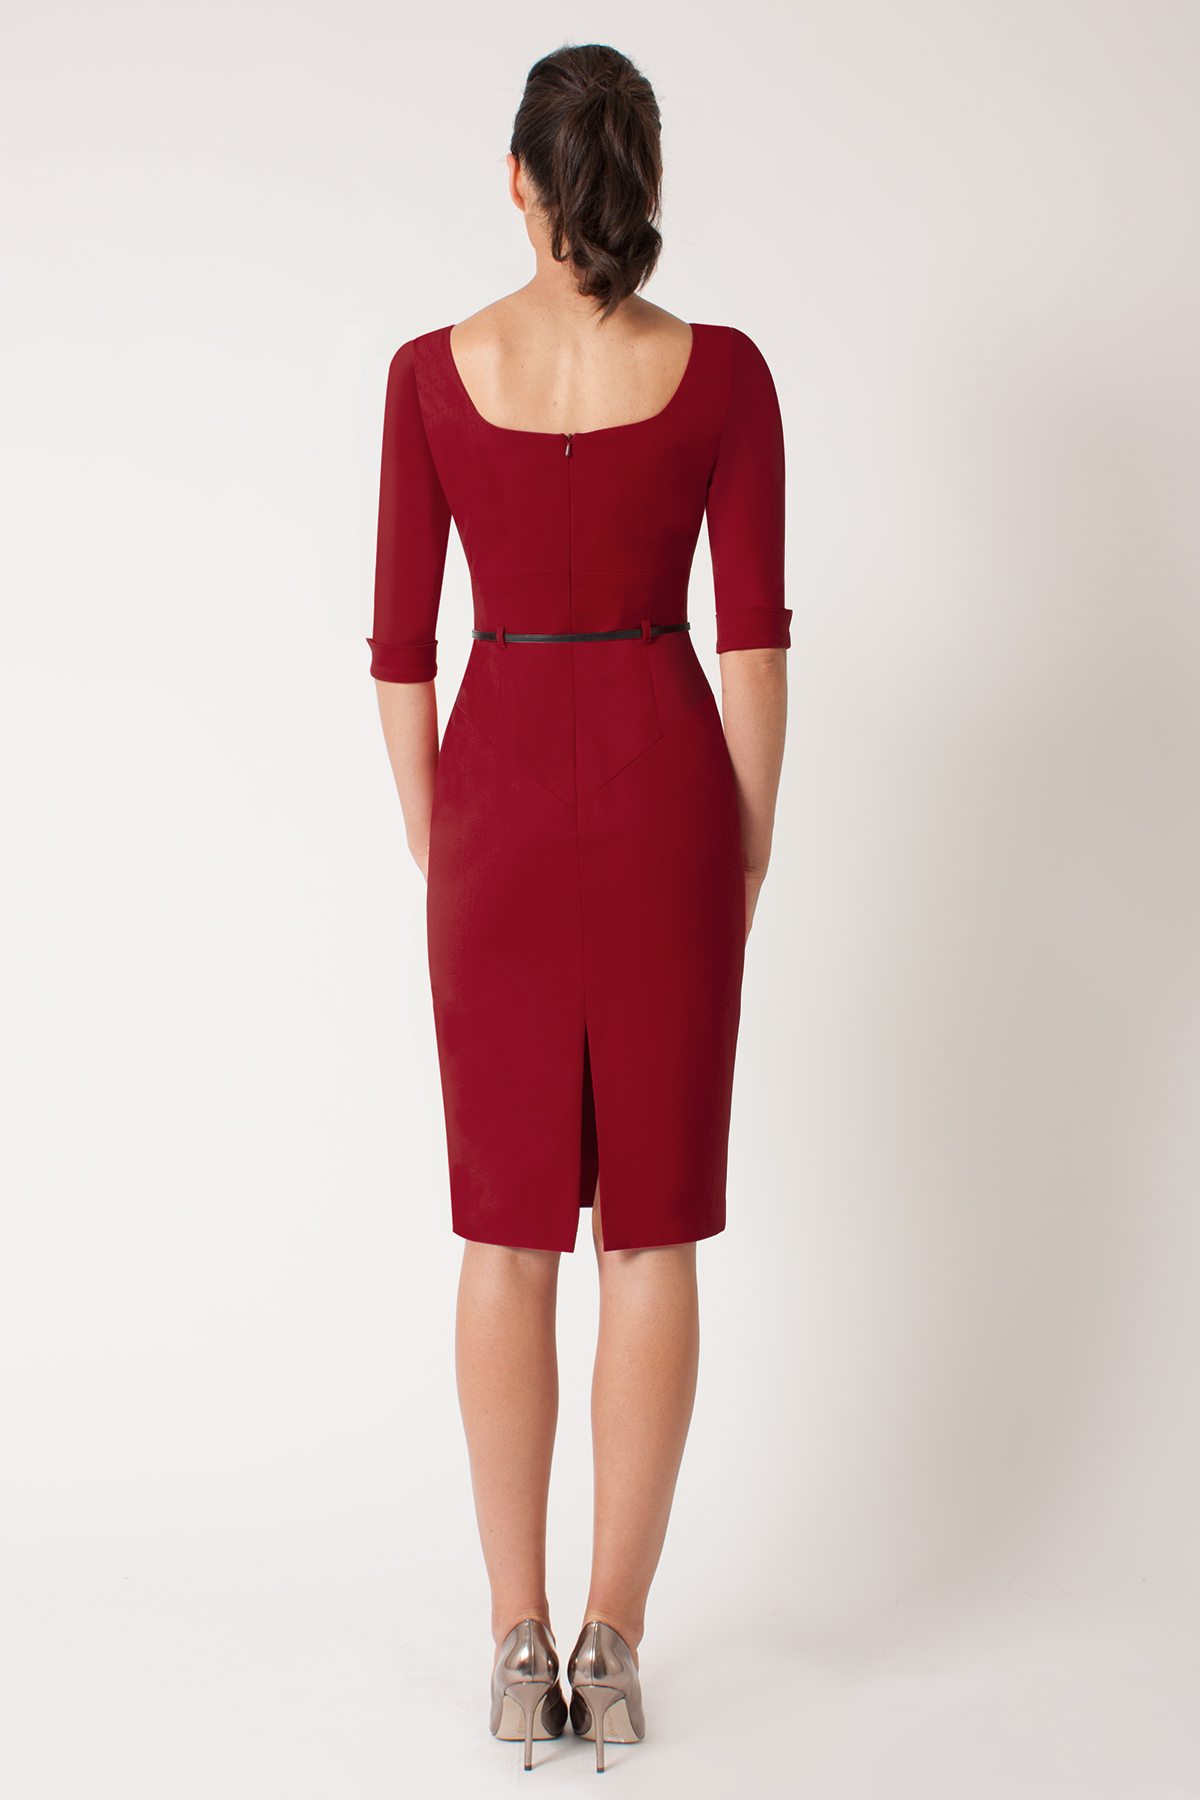 Black halo 3/4 Sleeve Jackie O in Red | Lyst